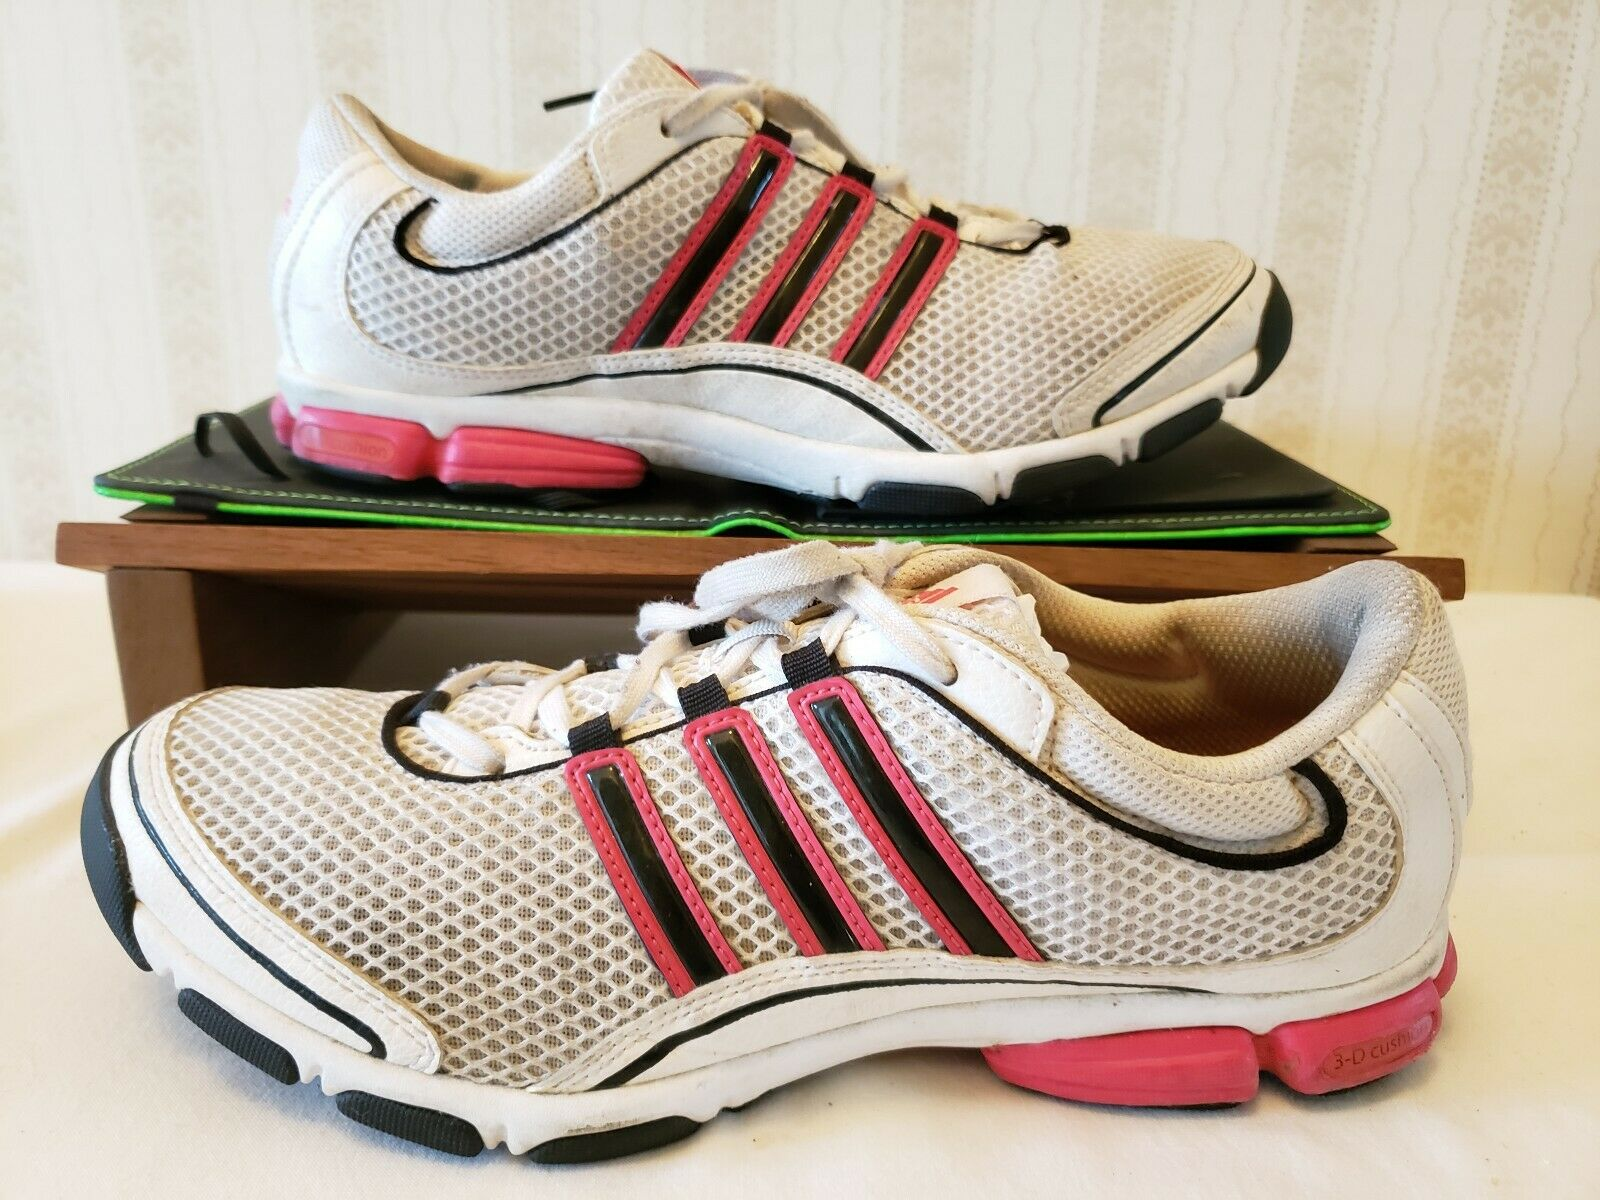 Adidas Torsion System Running Sneakers White  Pink G40087 Women Sz 8.5 M